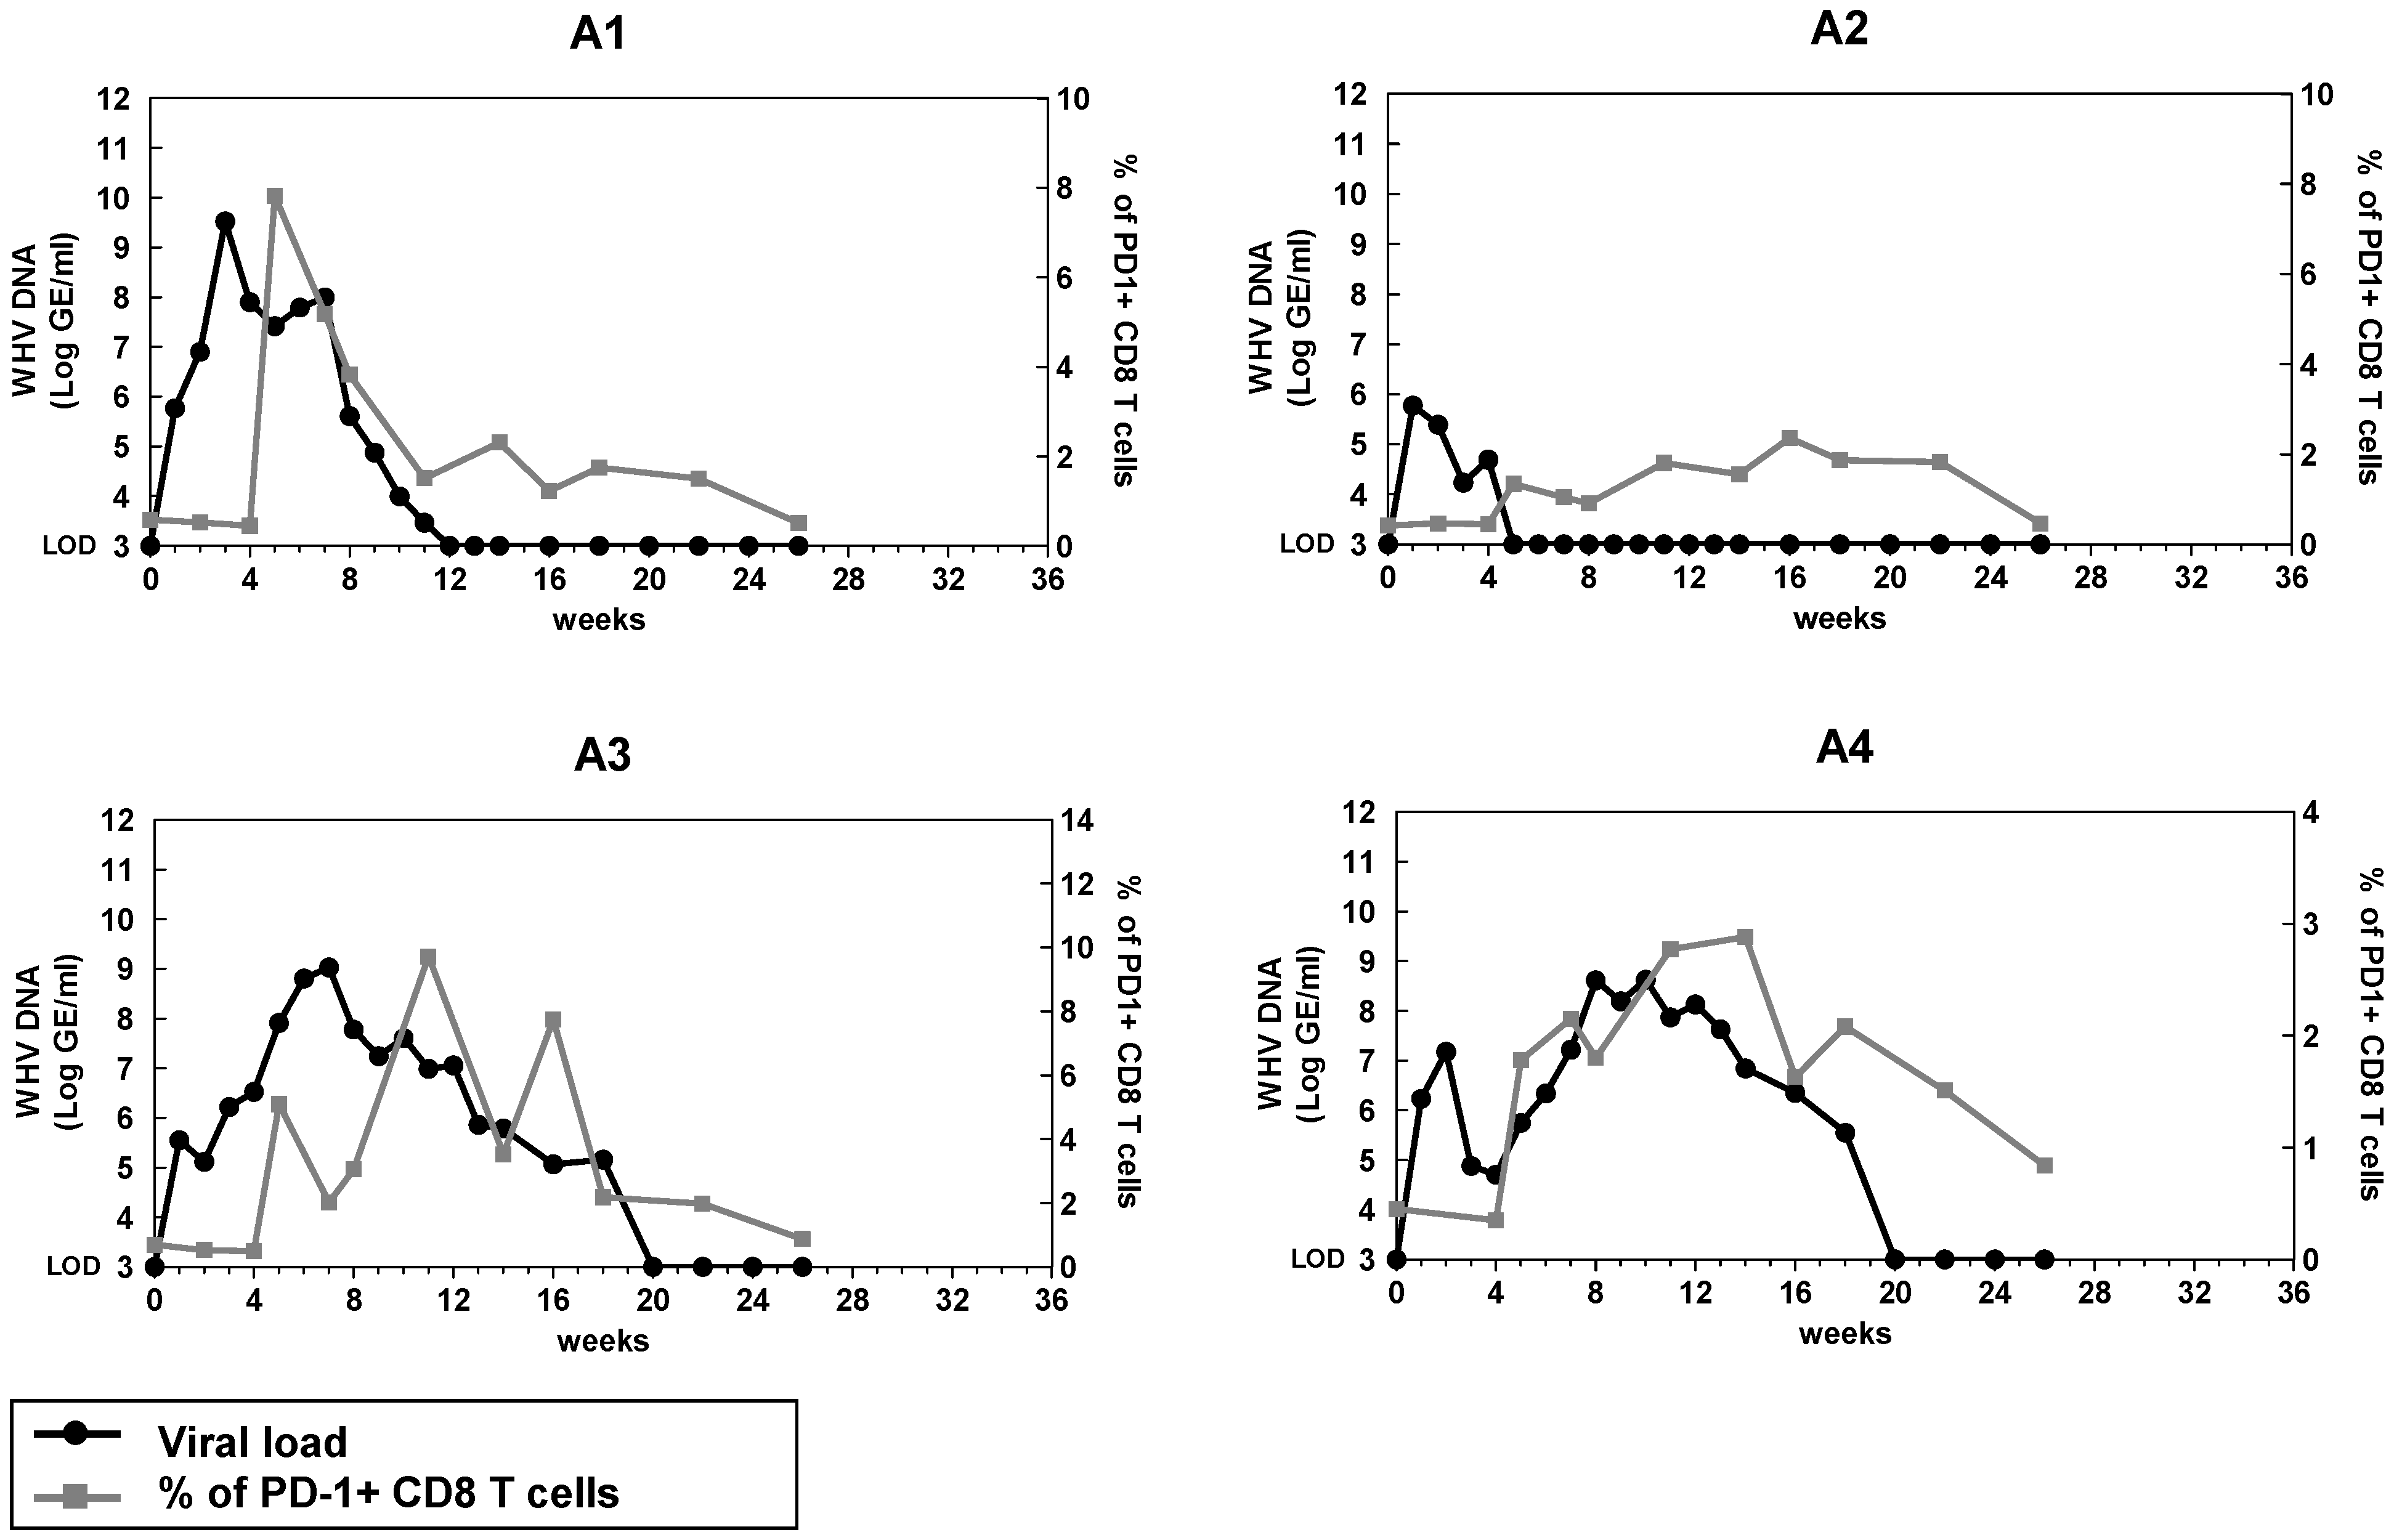 Kinetics of PD-1 expression on CD8 T cells during acute WHV infection.